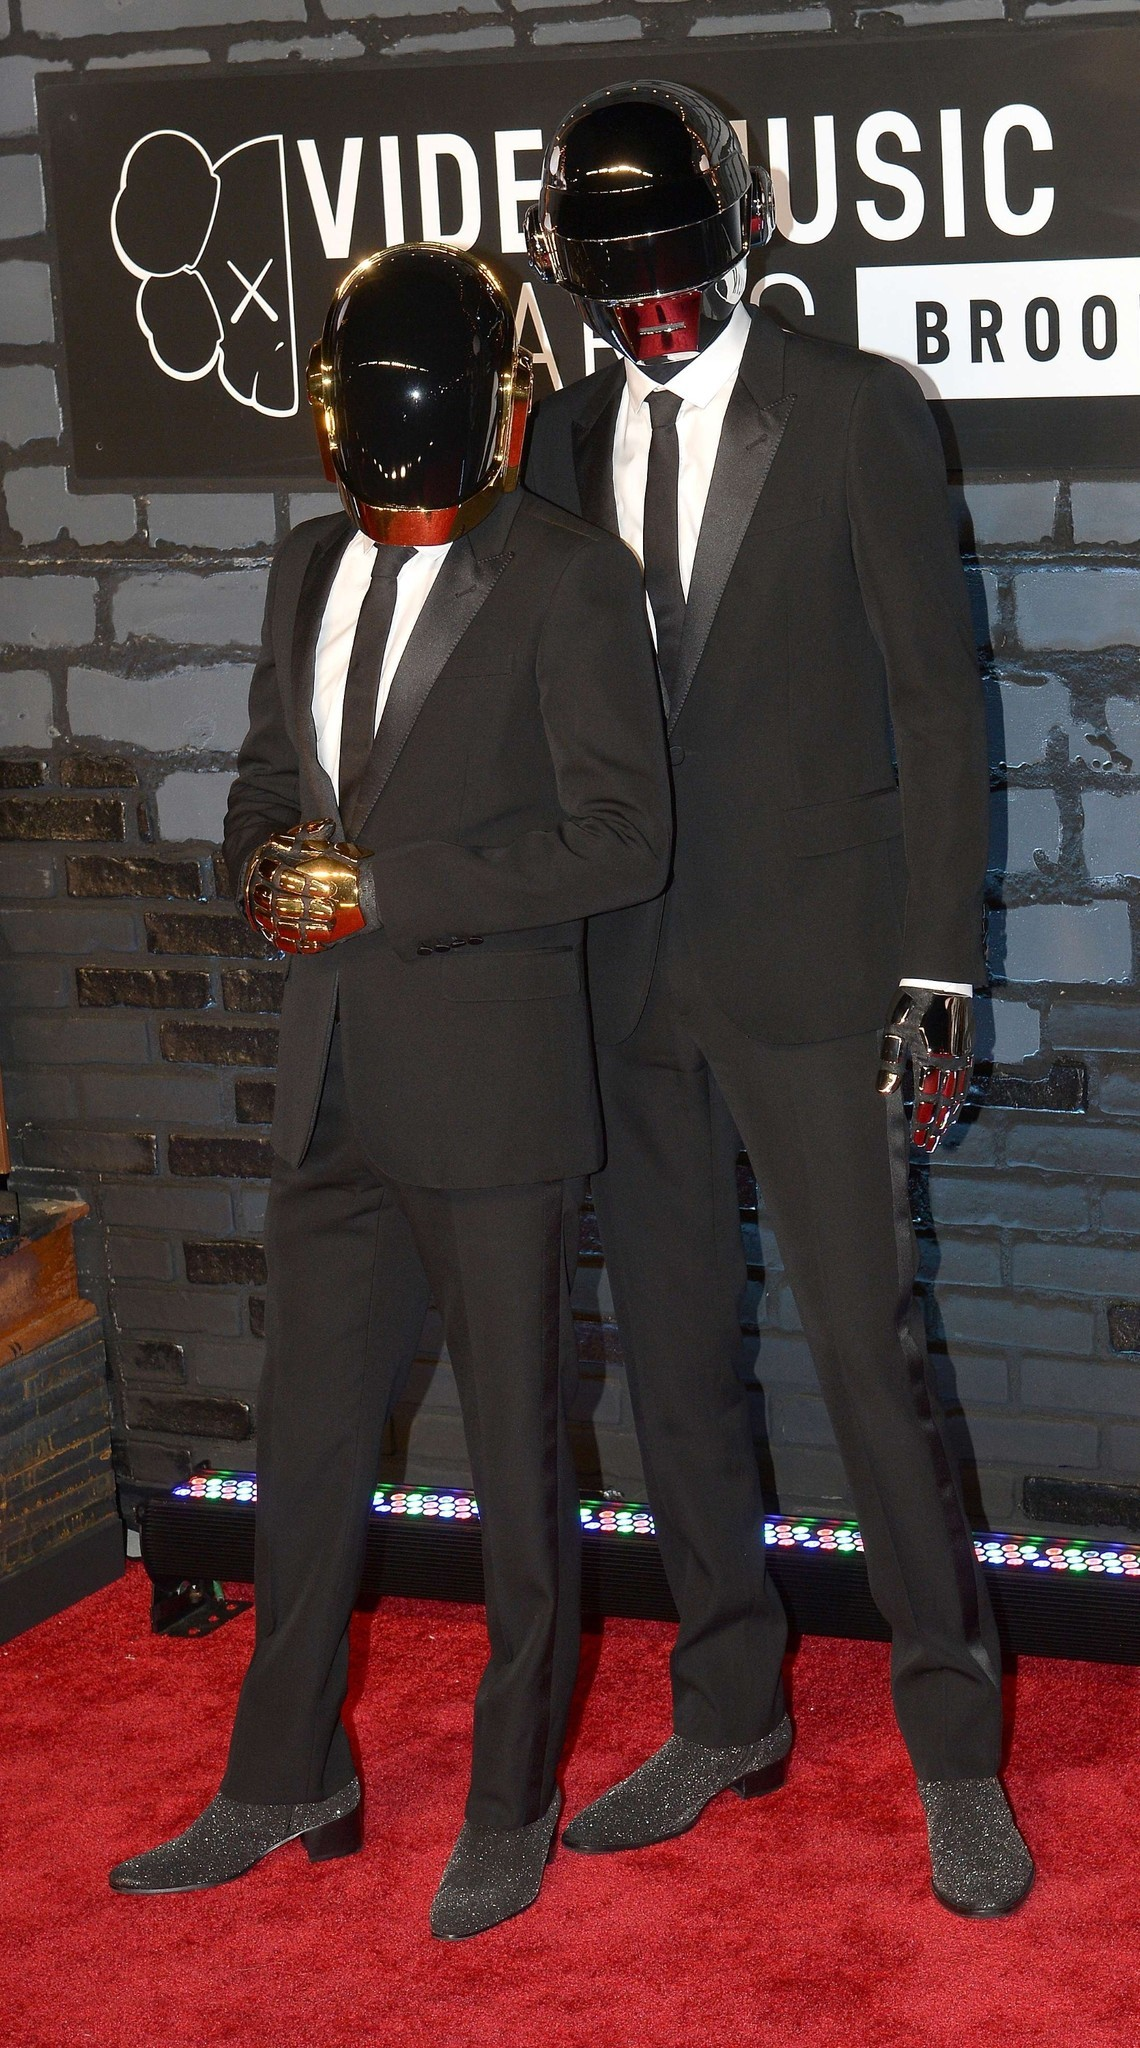 Will Daft Punk teach Grammys how to dance?